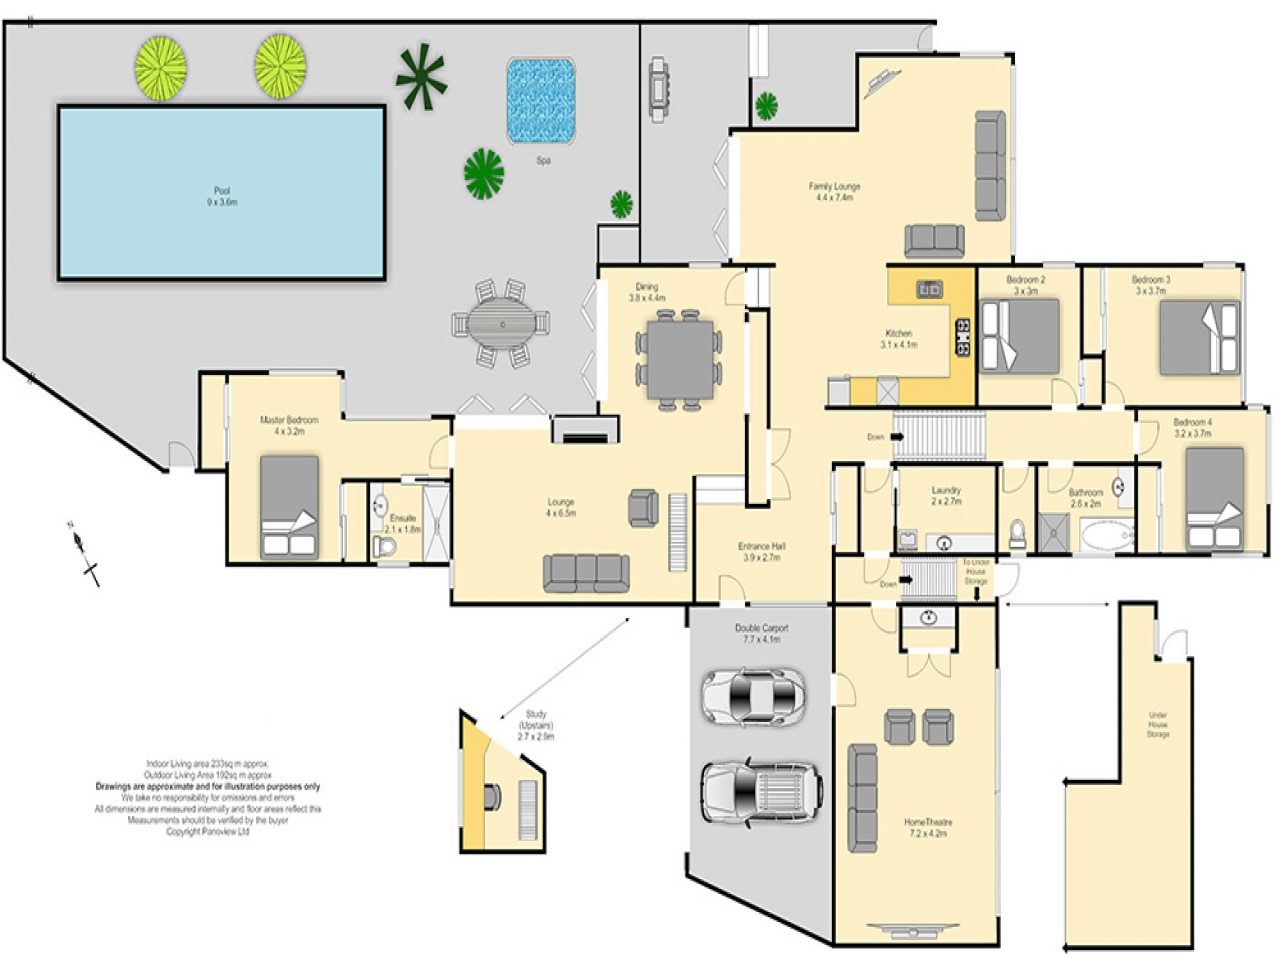 large mansion floor plans big house floors plan designs house blueprint floor plan house plans with a view treesranch com 5553